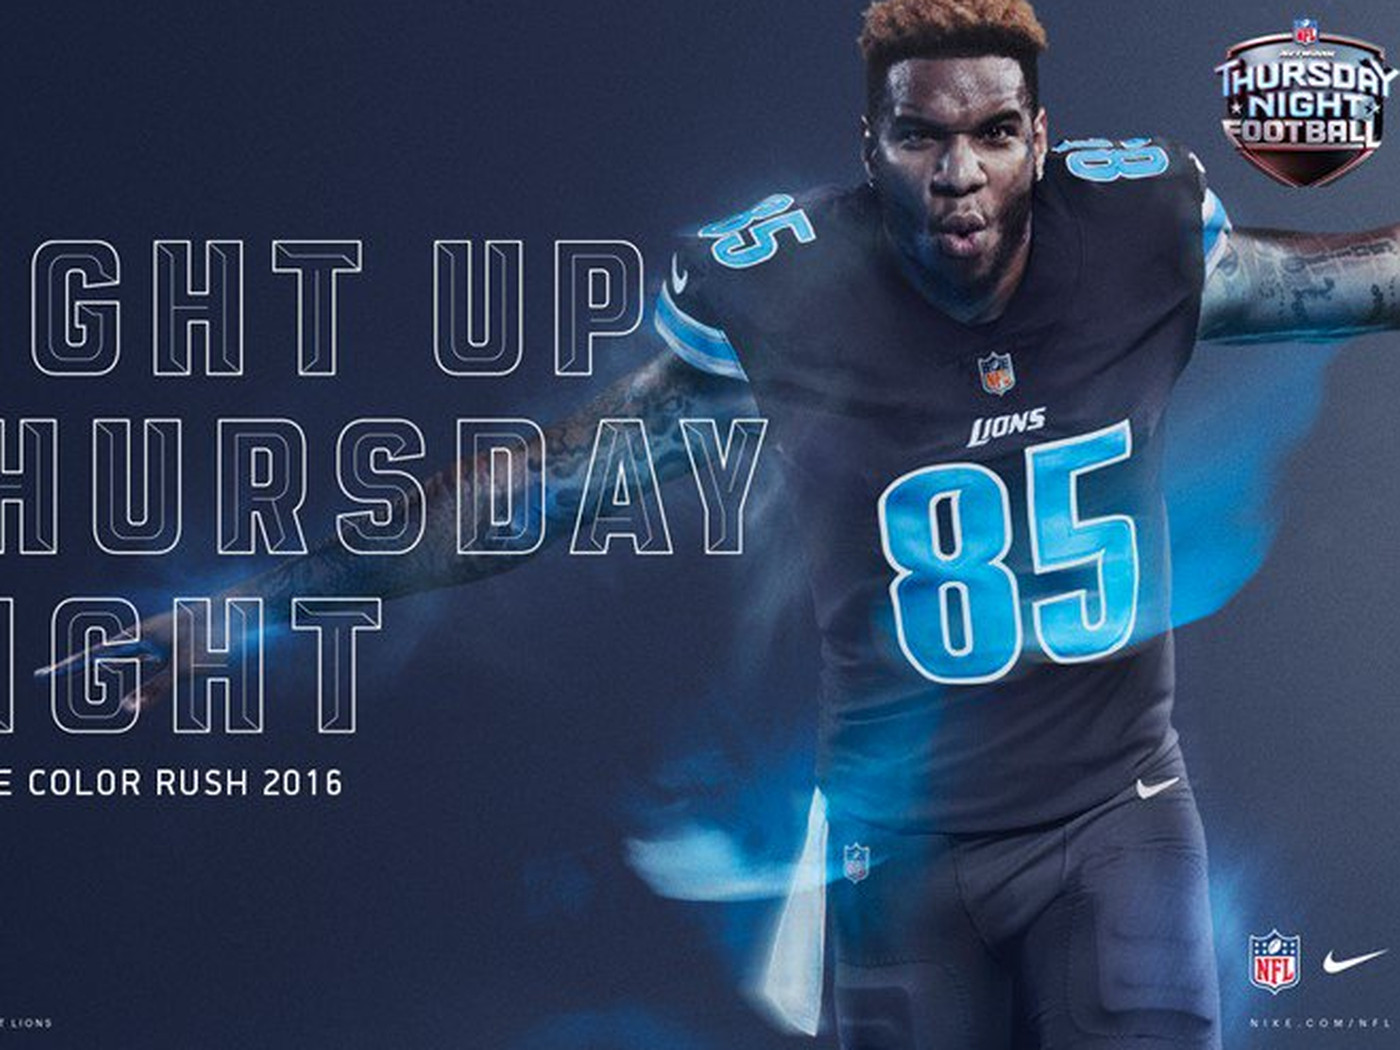 Monday open thread: Should the Detroit Lions wear their color rush ...